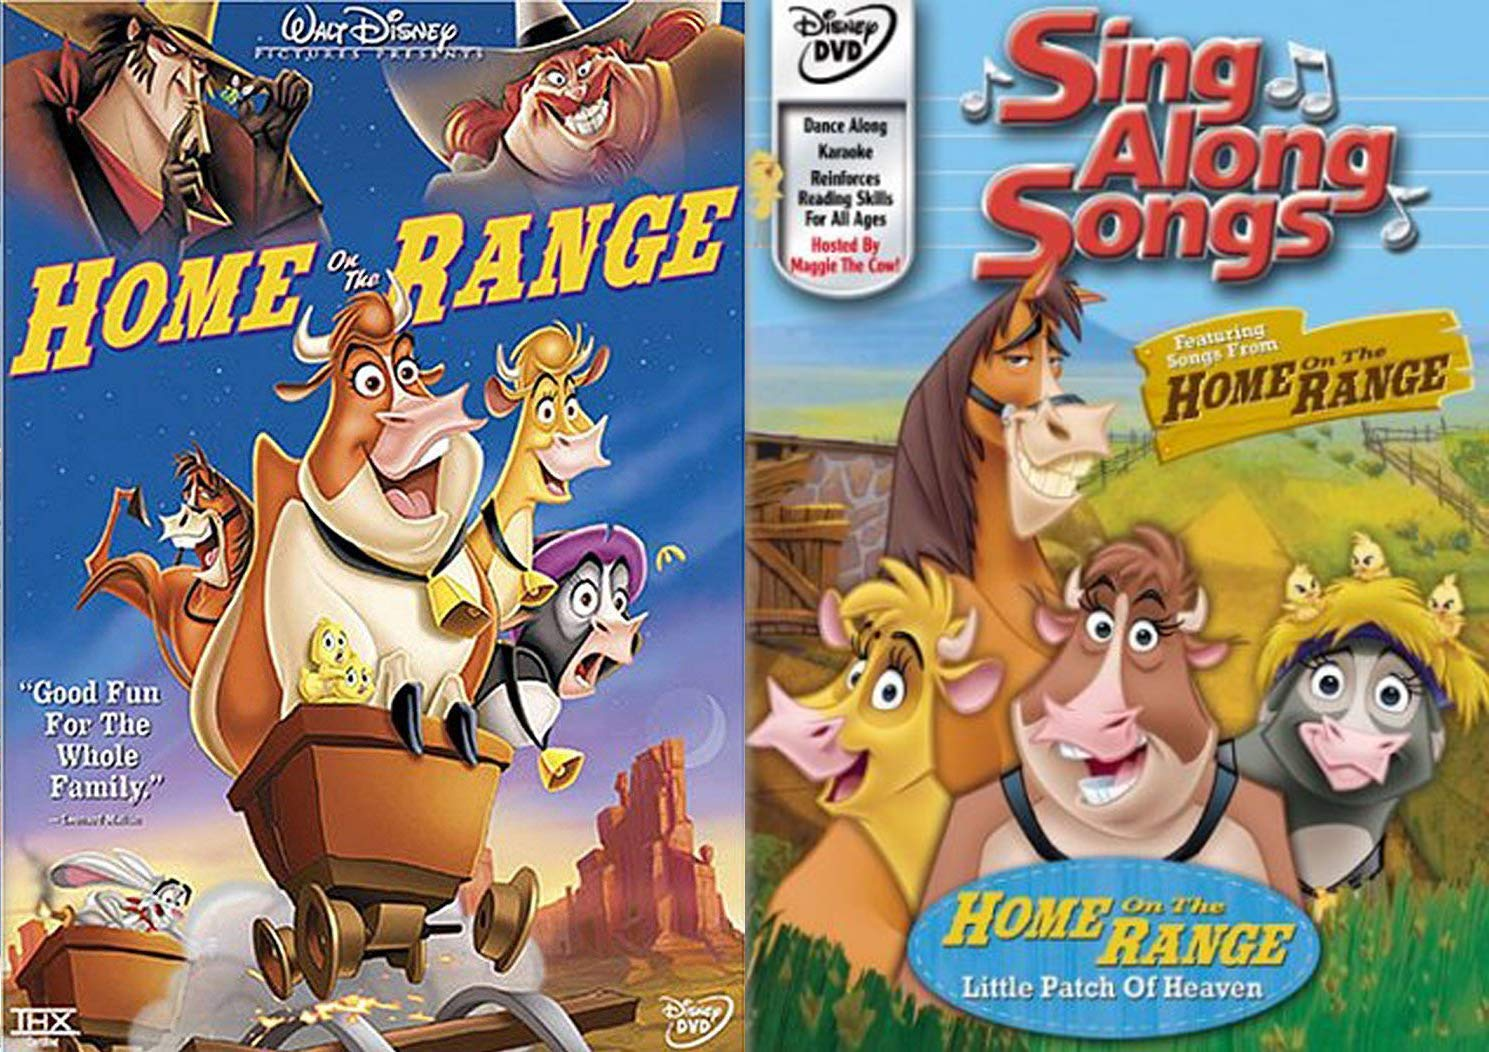 Maggie the Cow Sing A long Animals! Disney's Home On The Range Double Feature DVD Rip-Roaring Wild West Music Songs fun Pack